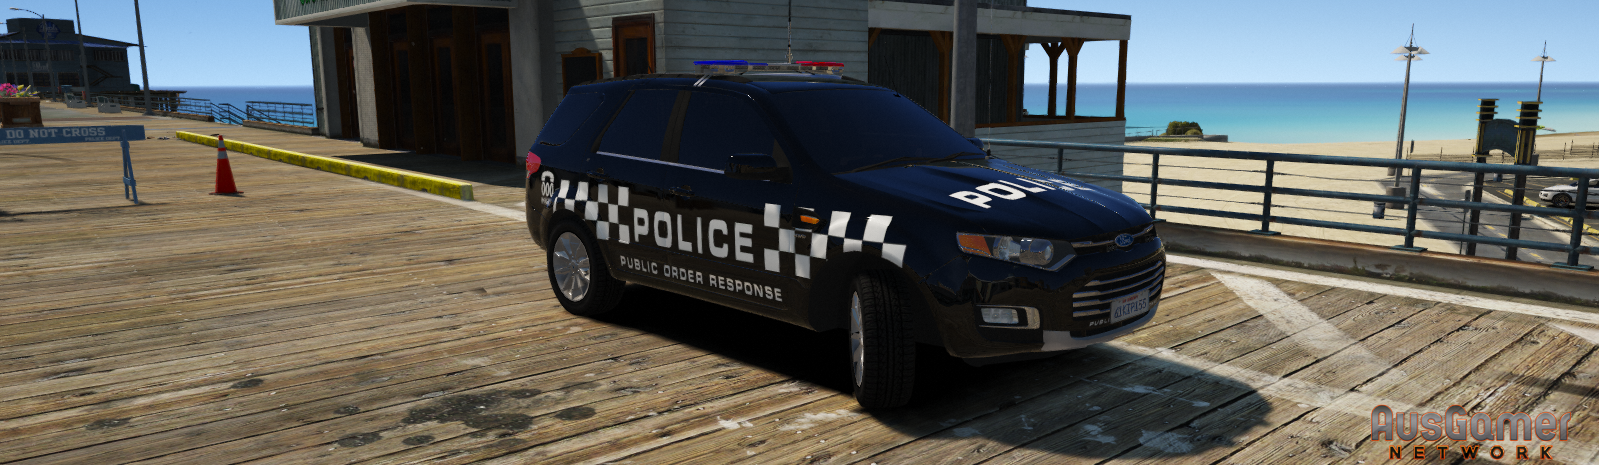 Victoria Police | P O R T Livery for Ford Territory - Vehicle